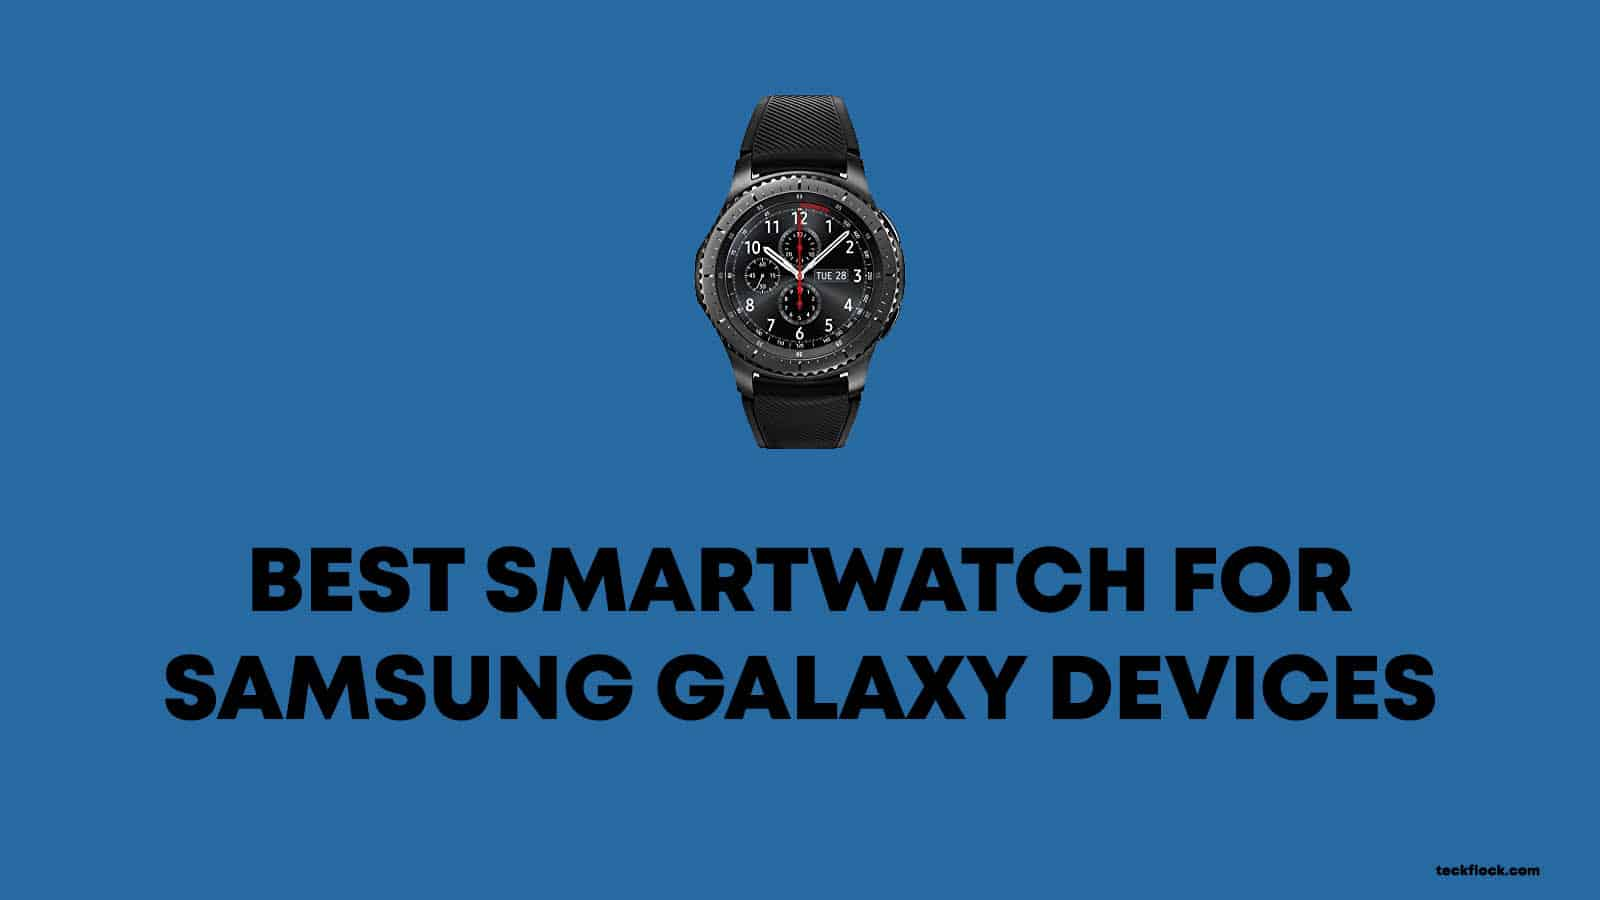 Best Smartwatch for Galaxy S10, S9, S8, S7 and Note 9 and 8